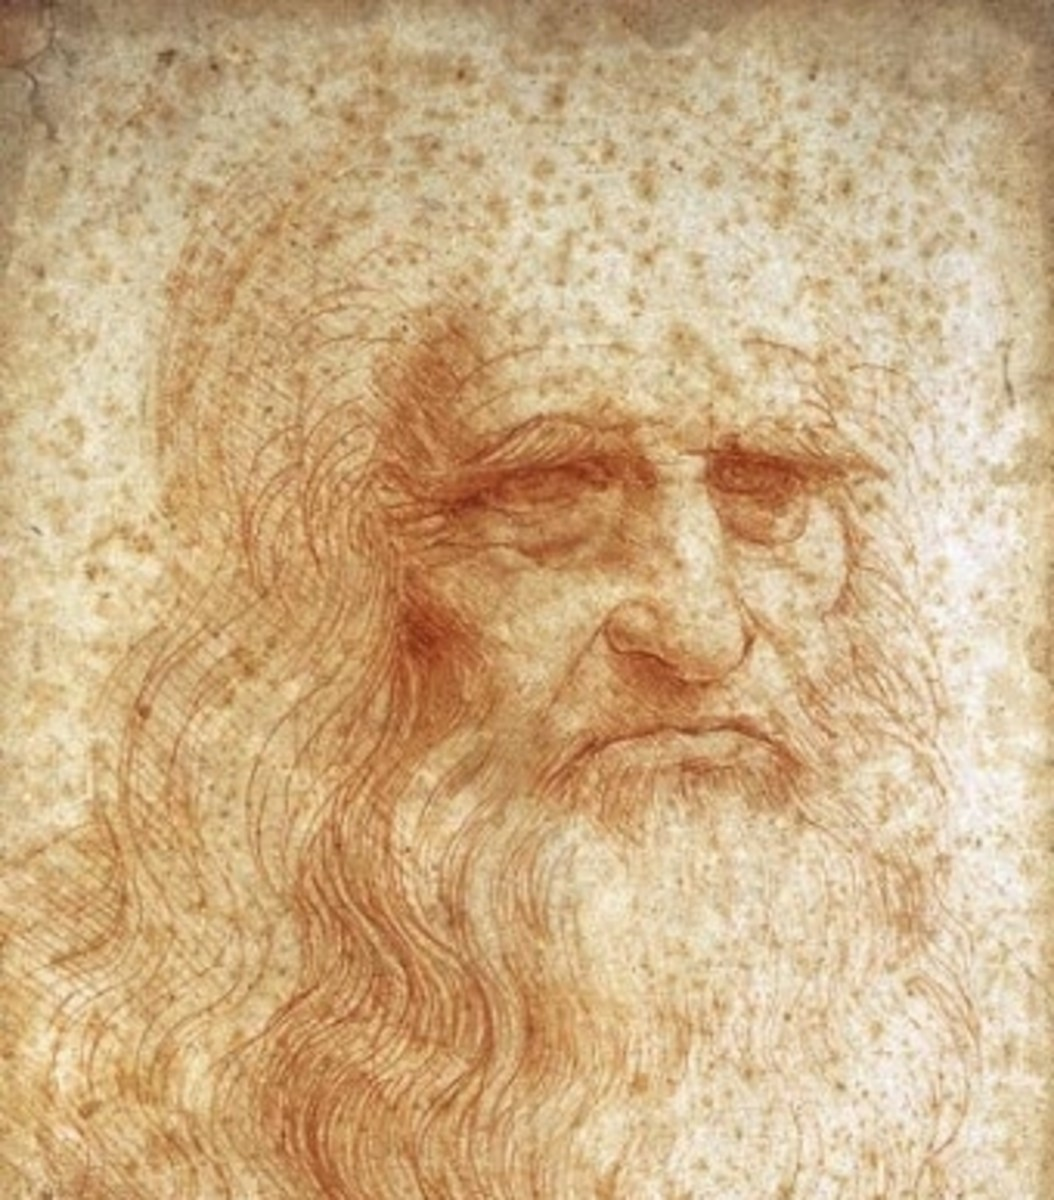 Leonardo da Vinci- The Genius